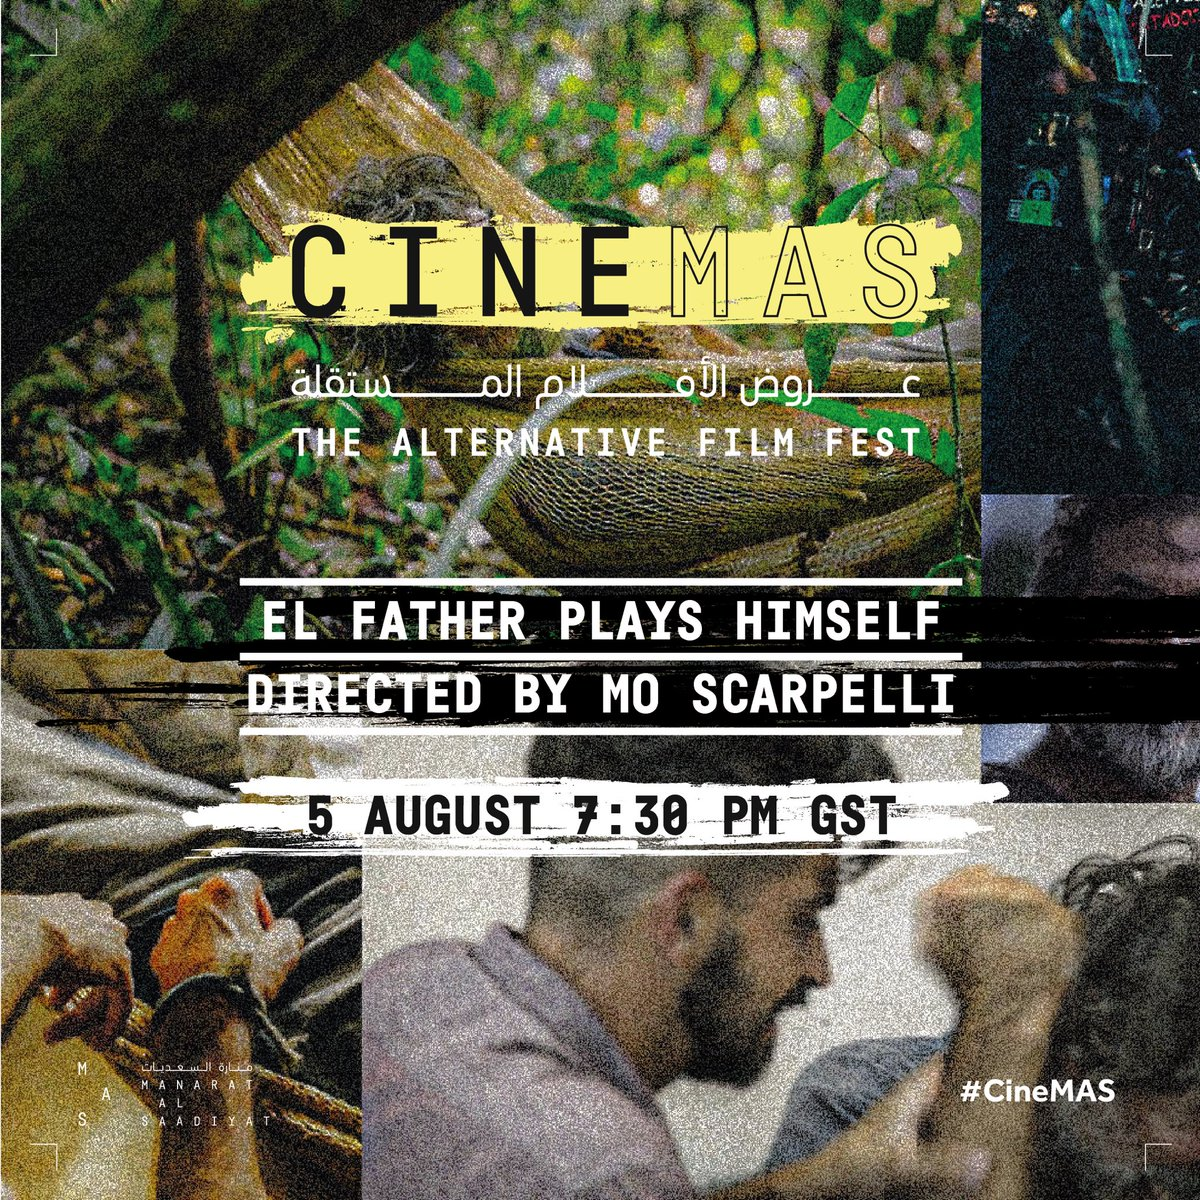 """Screening on #CineMAS """"El Father Plays Himself"""", a young film director who makes a film based on his father's life in the Amazon jungle where he discovers a different side to his personality.   For registration visit the link: https://www.cine-mas.me/elfather  #ManaraAlSaadiyatpic.twitter.com/YWc1L9dO2K"""